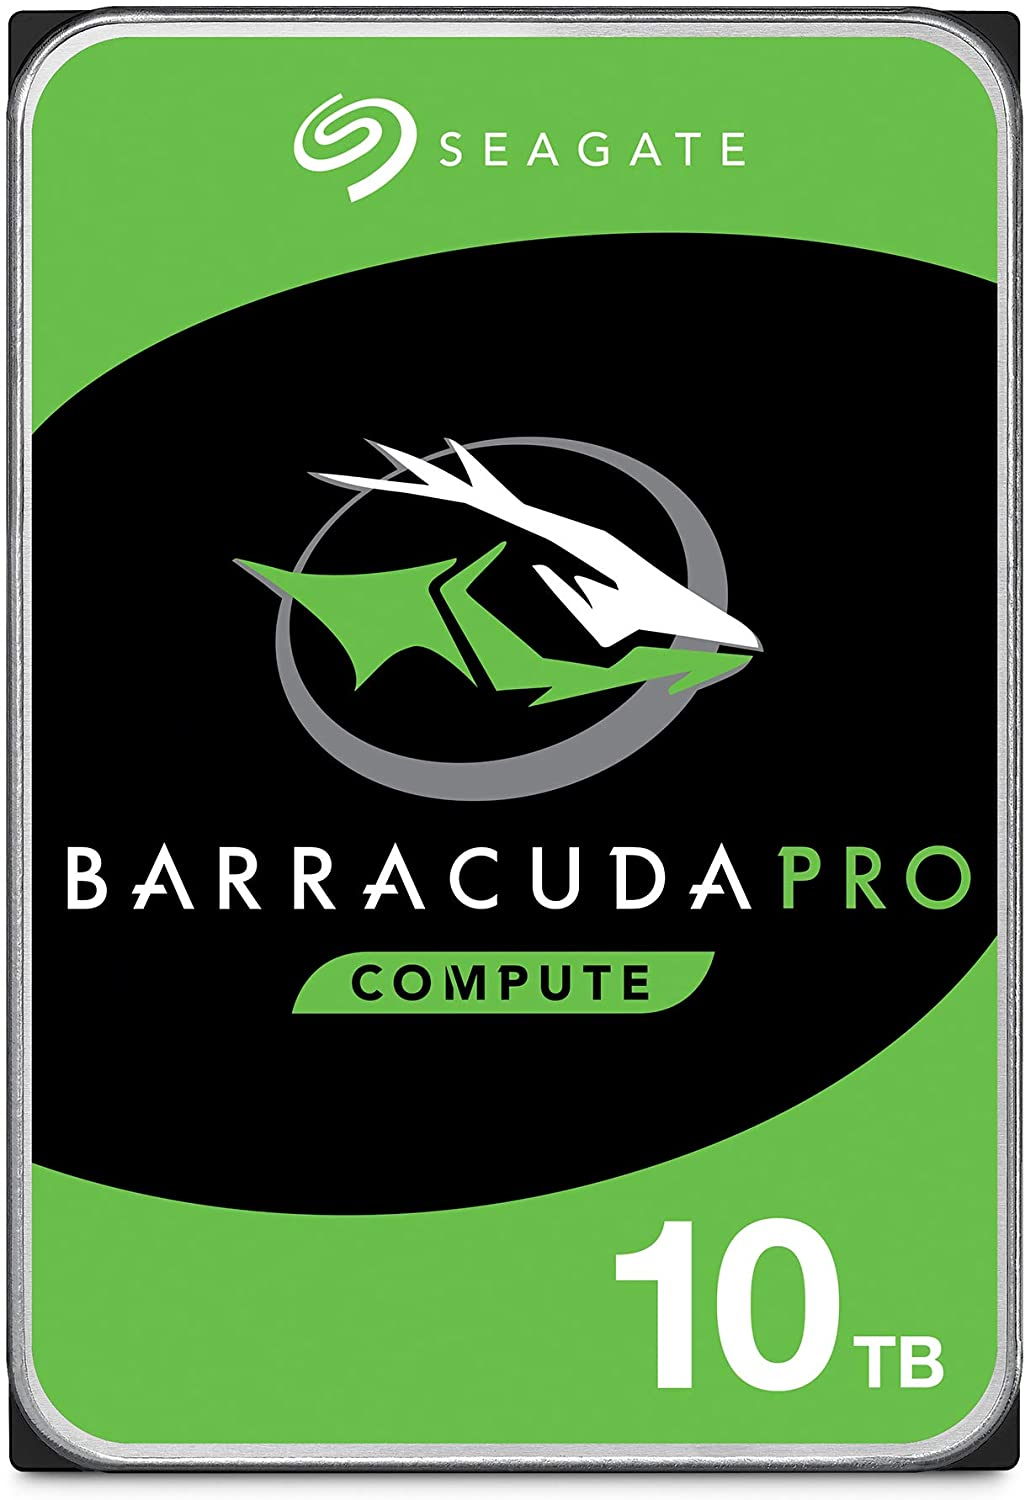 Seagate BarraCuda Pro 10TB Internal Hard Drive Performance HDD – 3.5 Inch SATA 6 Gb/s 7200 RPM 256MB Cache for Computer Desktop PC, Data Recovery (ST10000DM0004)